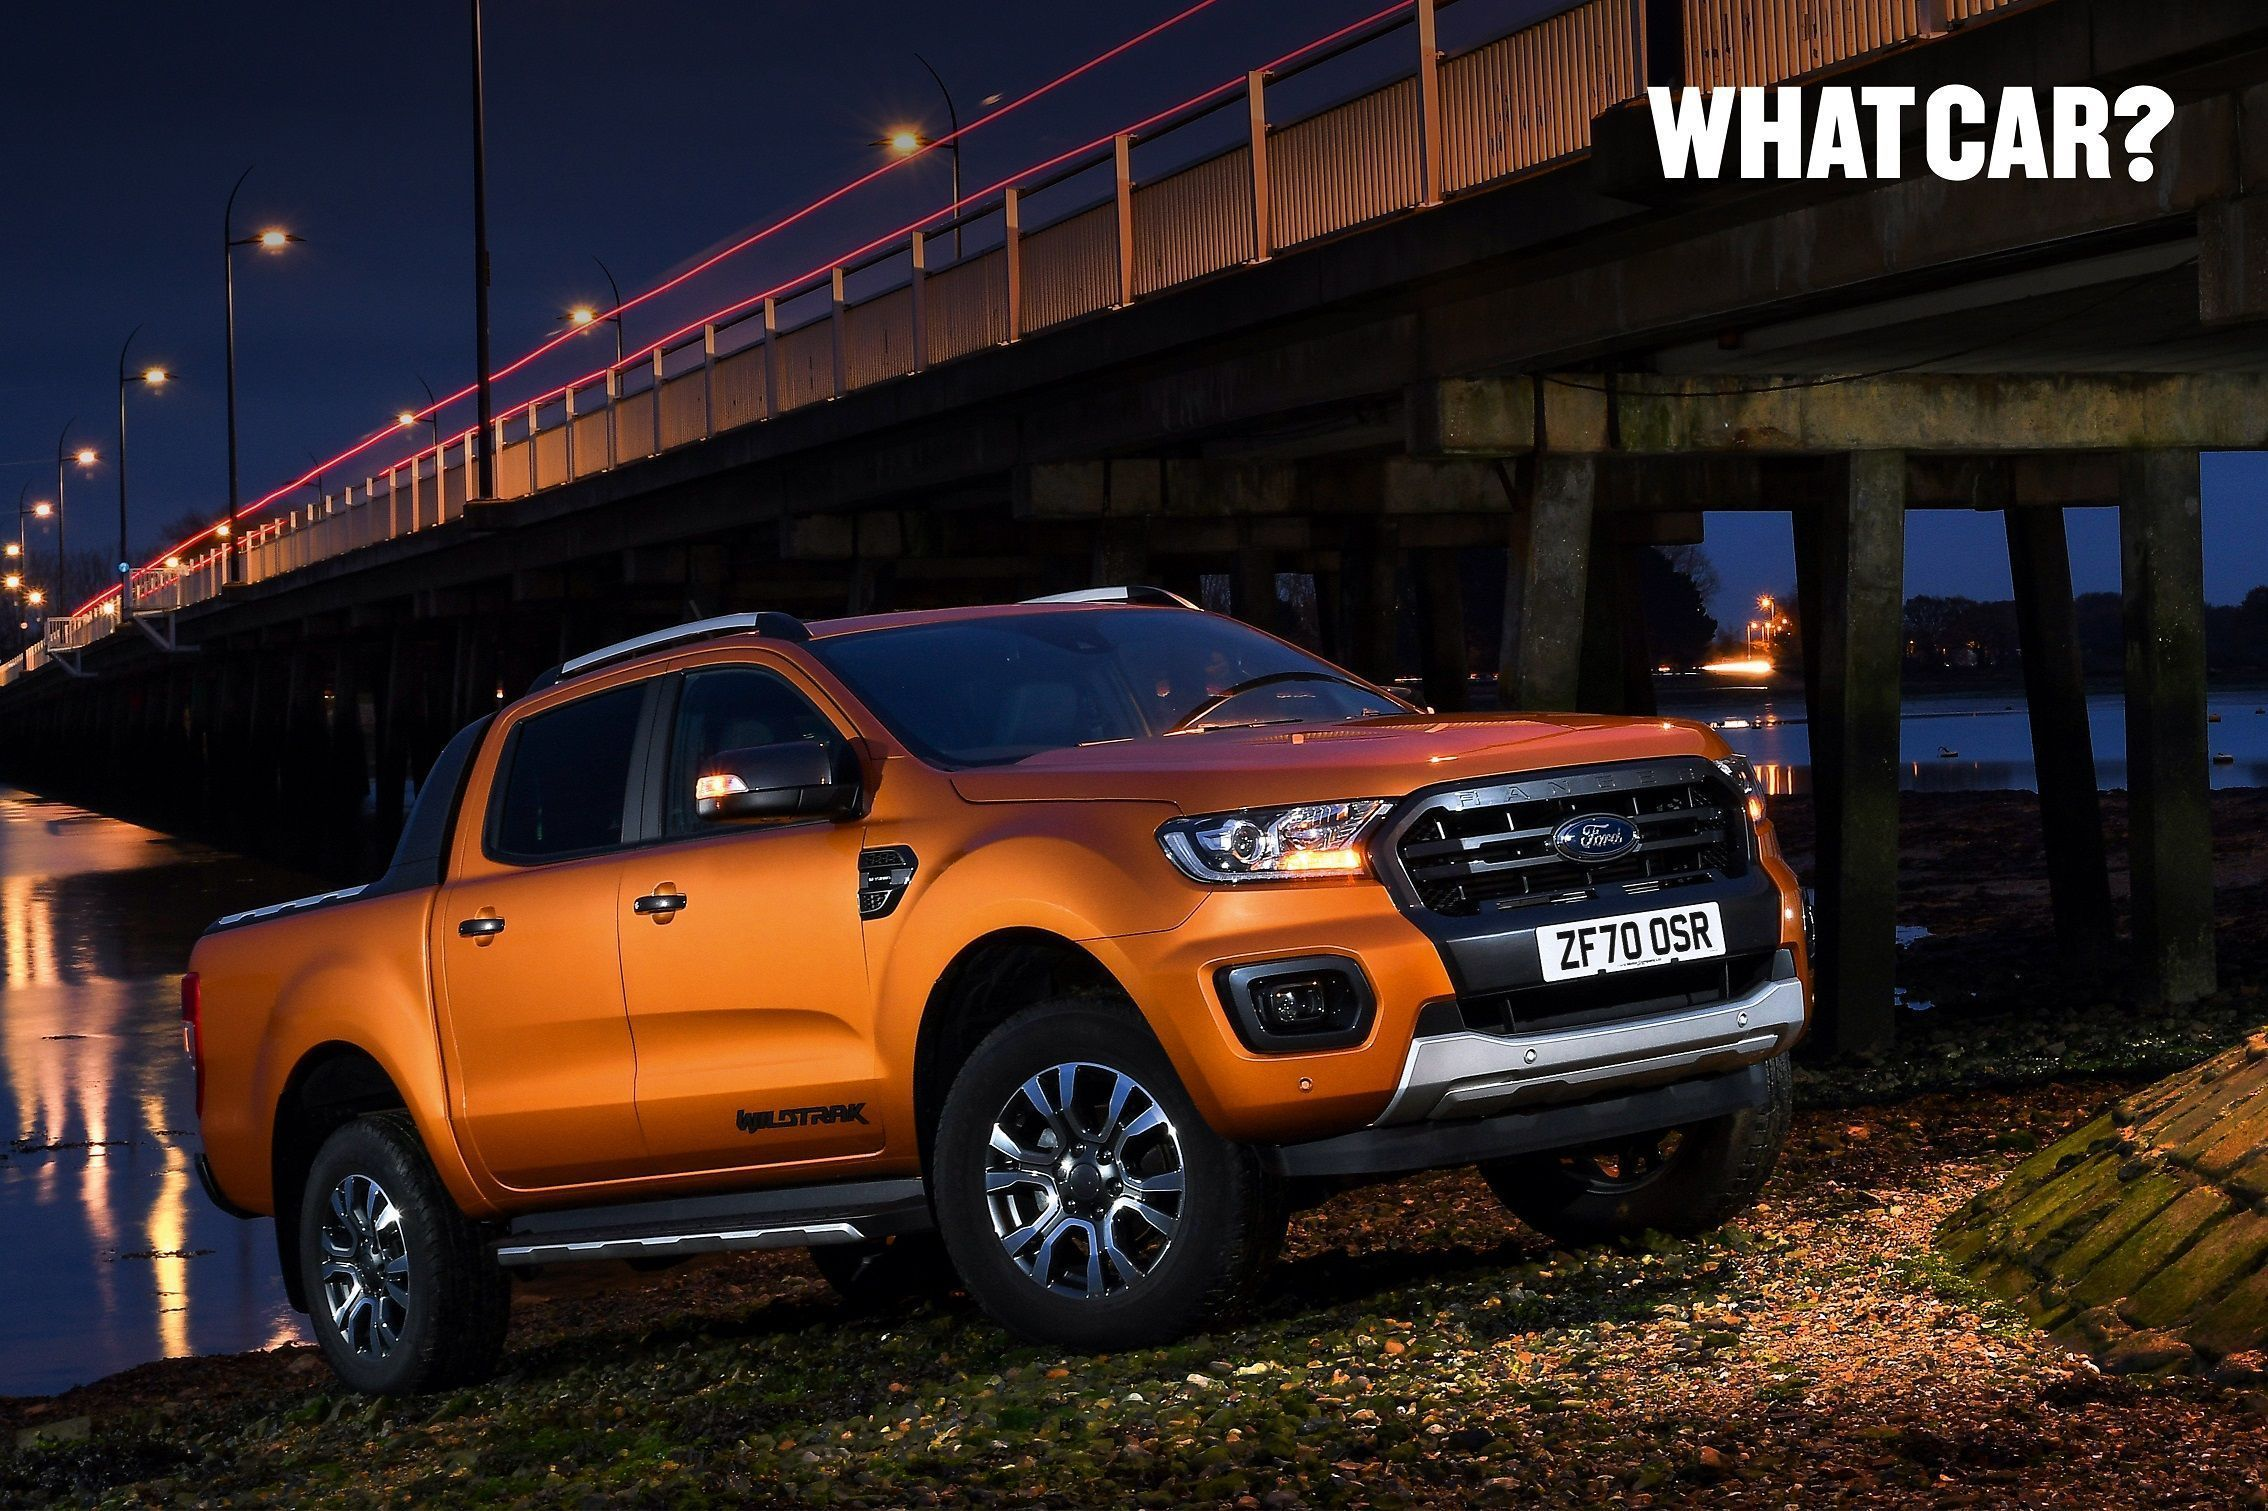 TOP PICK-UP: The hugely popular Ford Ranger